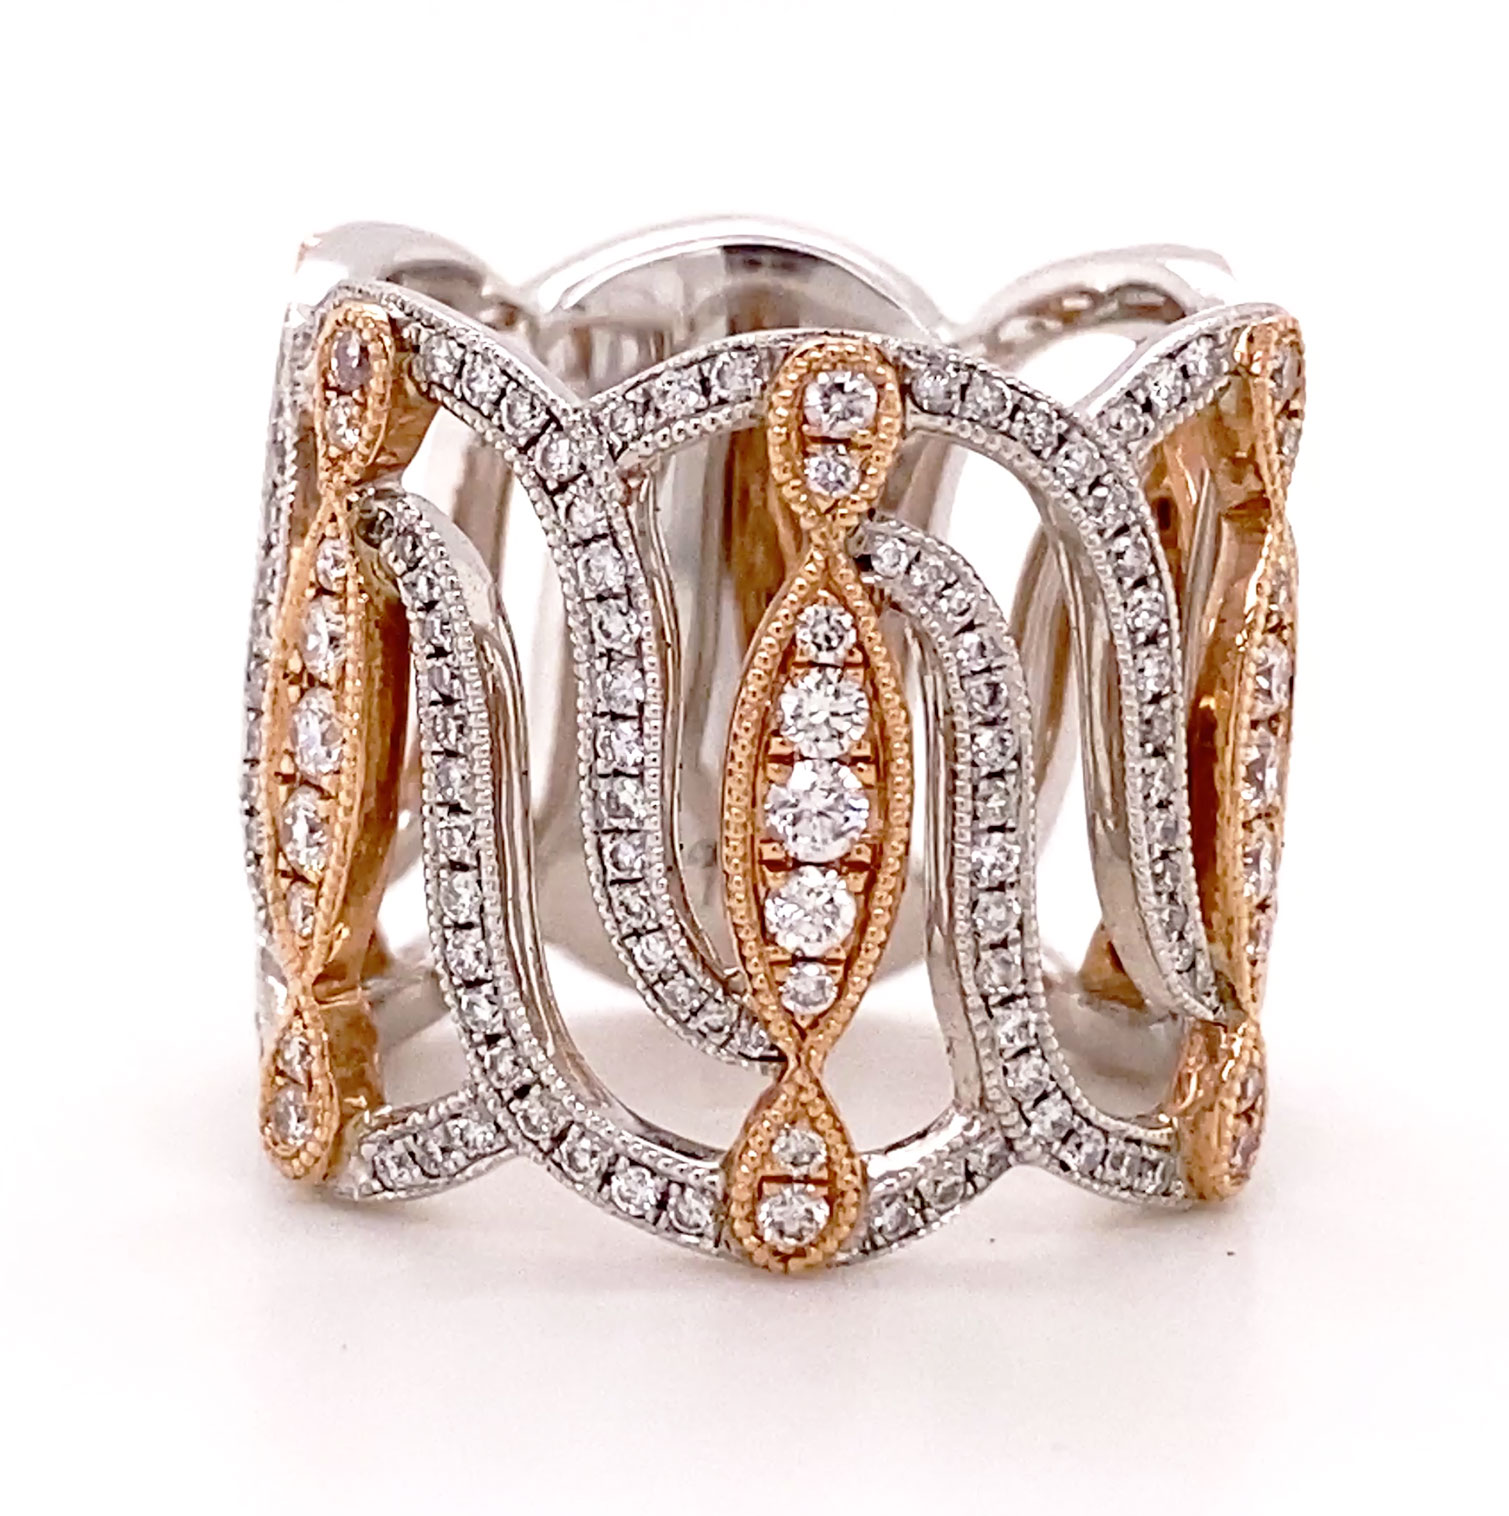 A lacey and feminine wide Diamond band balancing rose and white gold